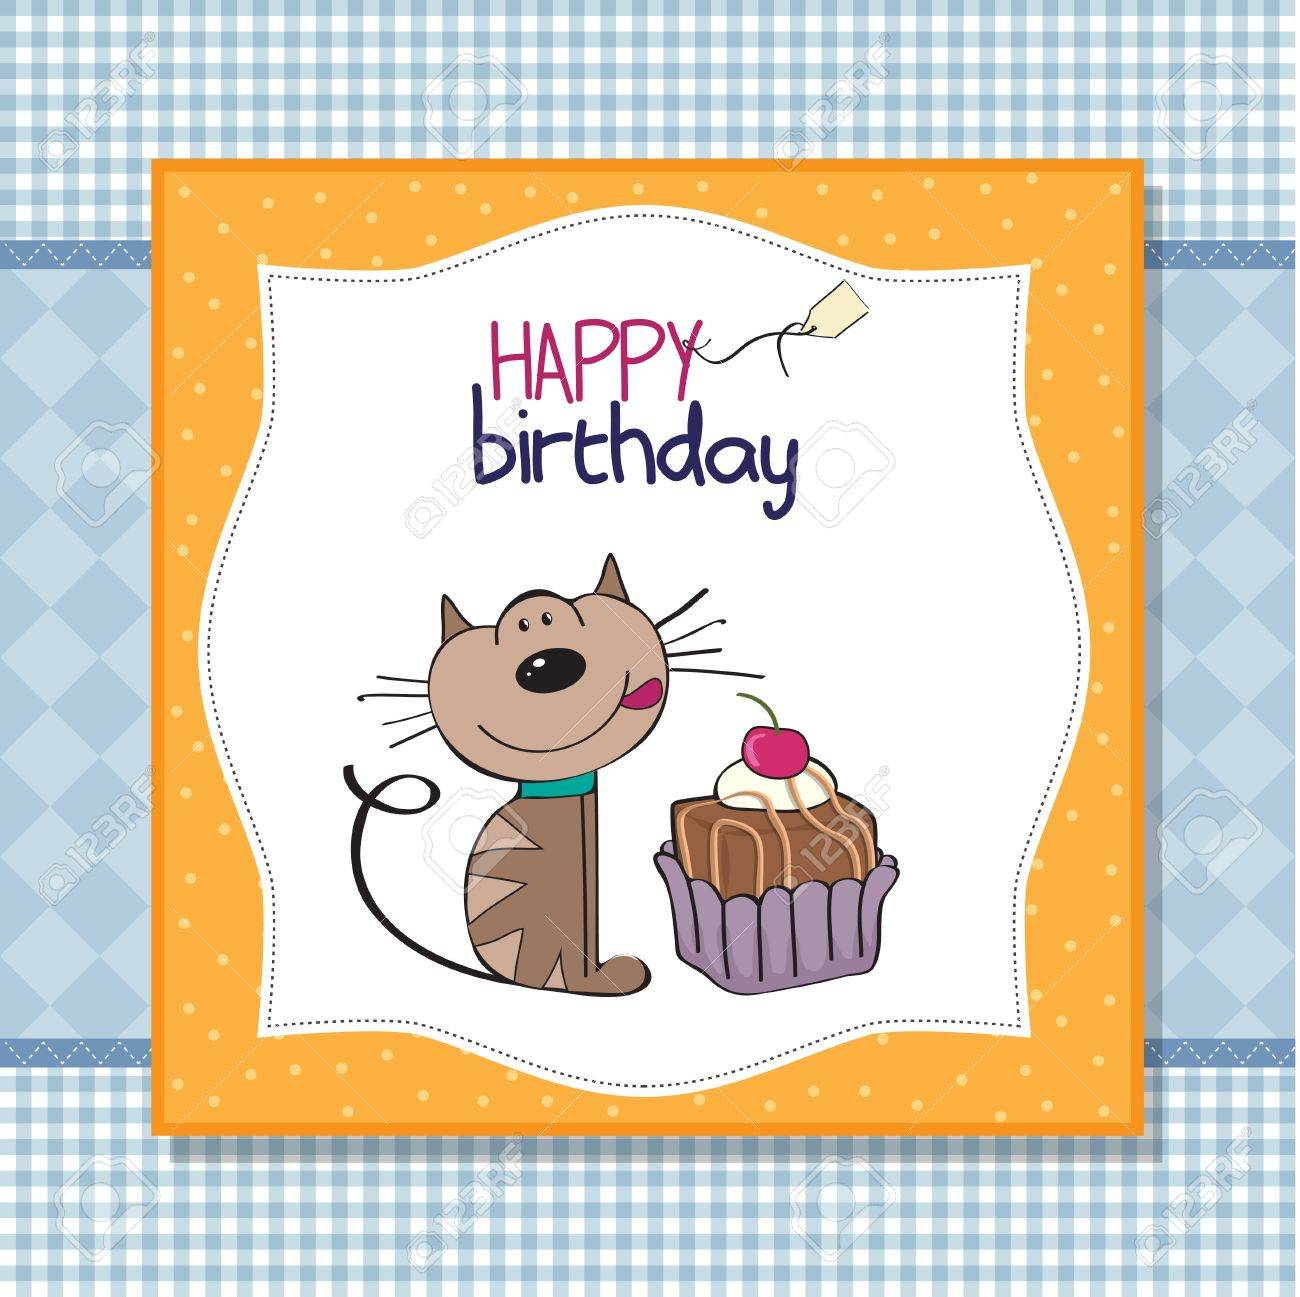 Birthday greeting card with a cat waiting to eat a cake royalty free birthday greeting card with a cat waiting to eat a cake stock vector 12704101 m4hsunfo